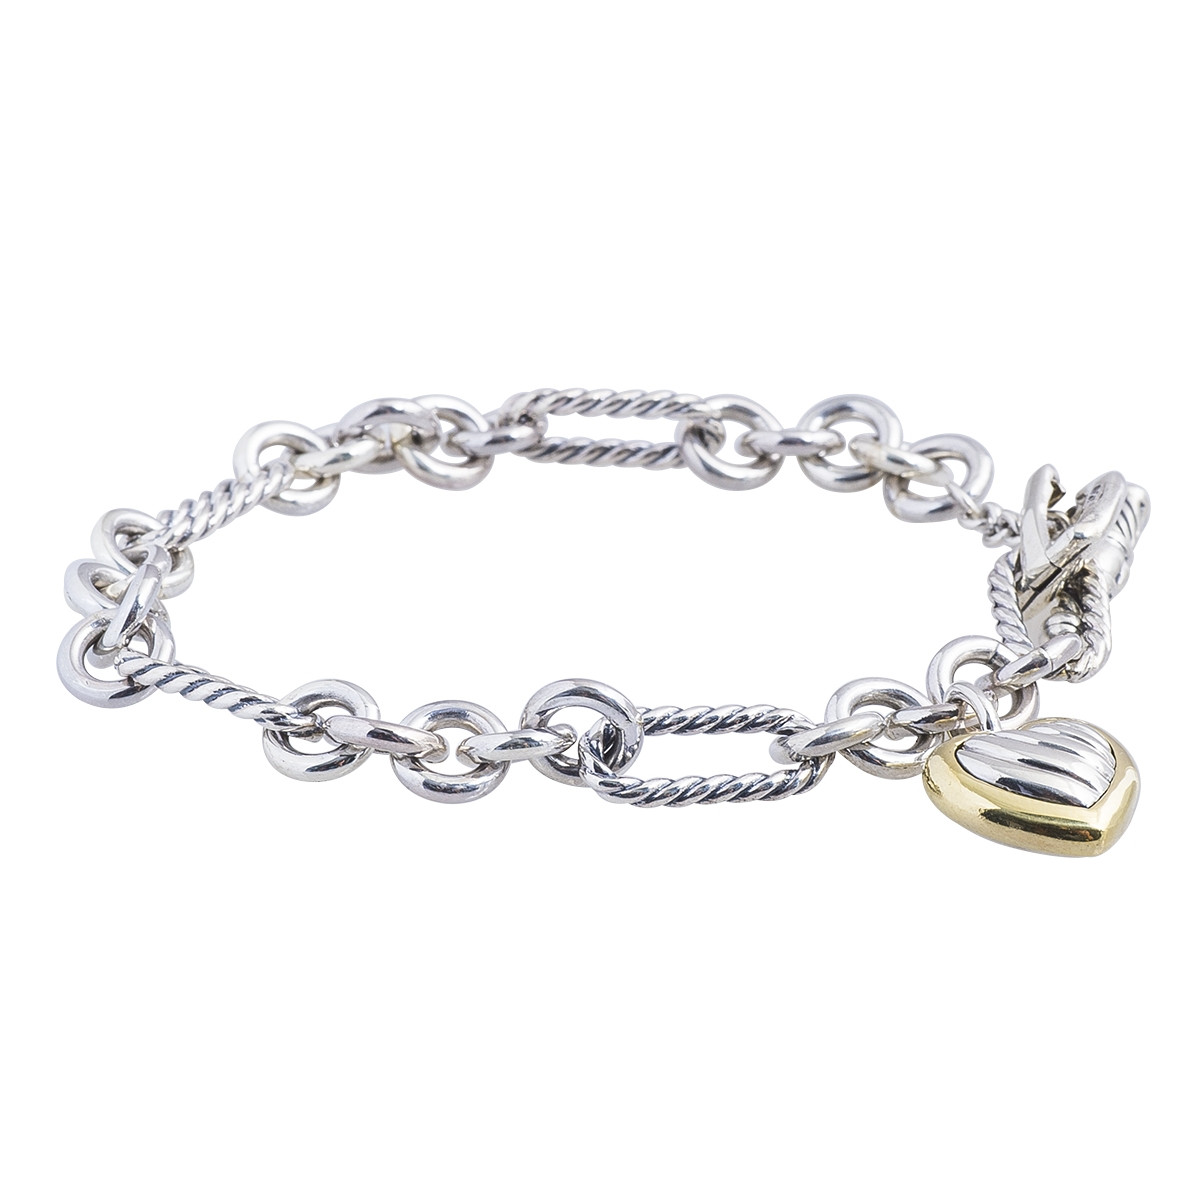 Vintage David Yurman Cable Heart Toggle Bracelet Gallery Image